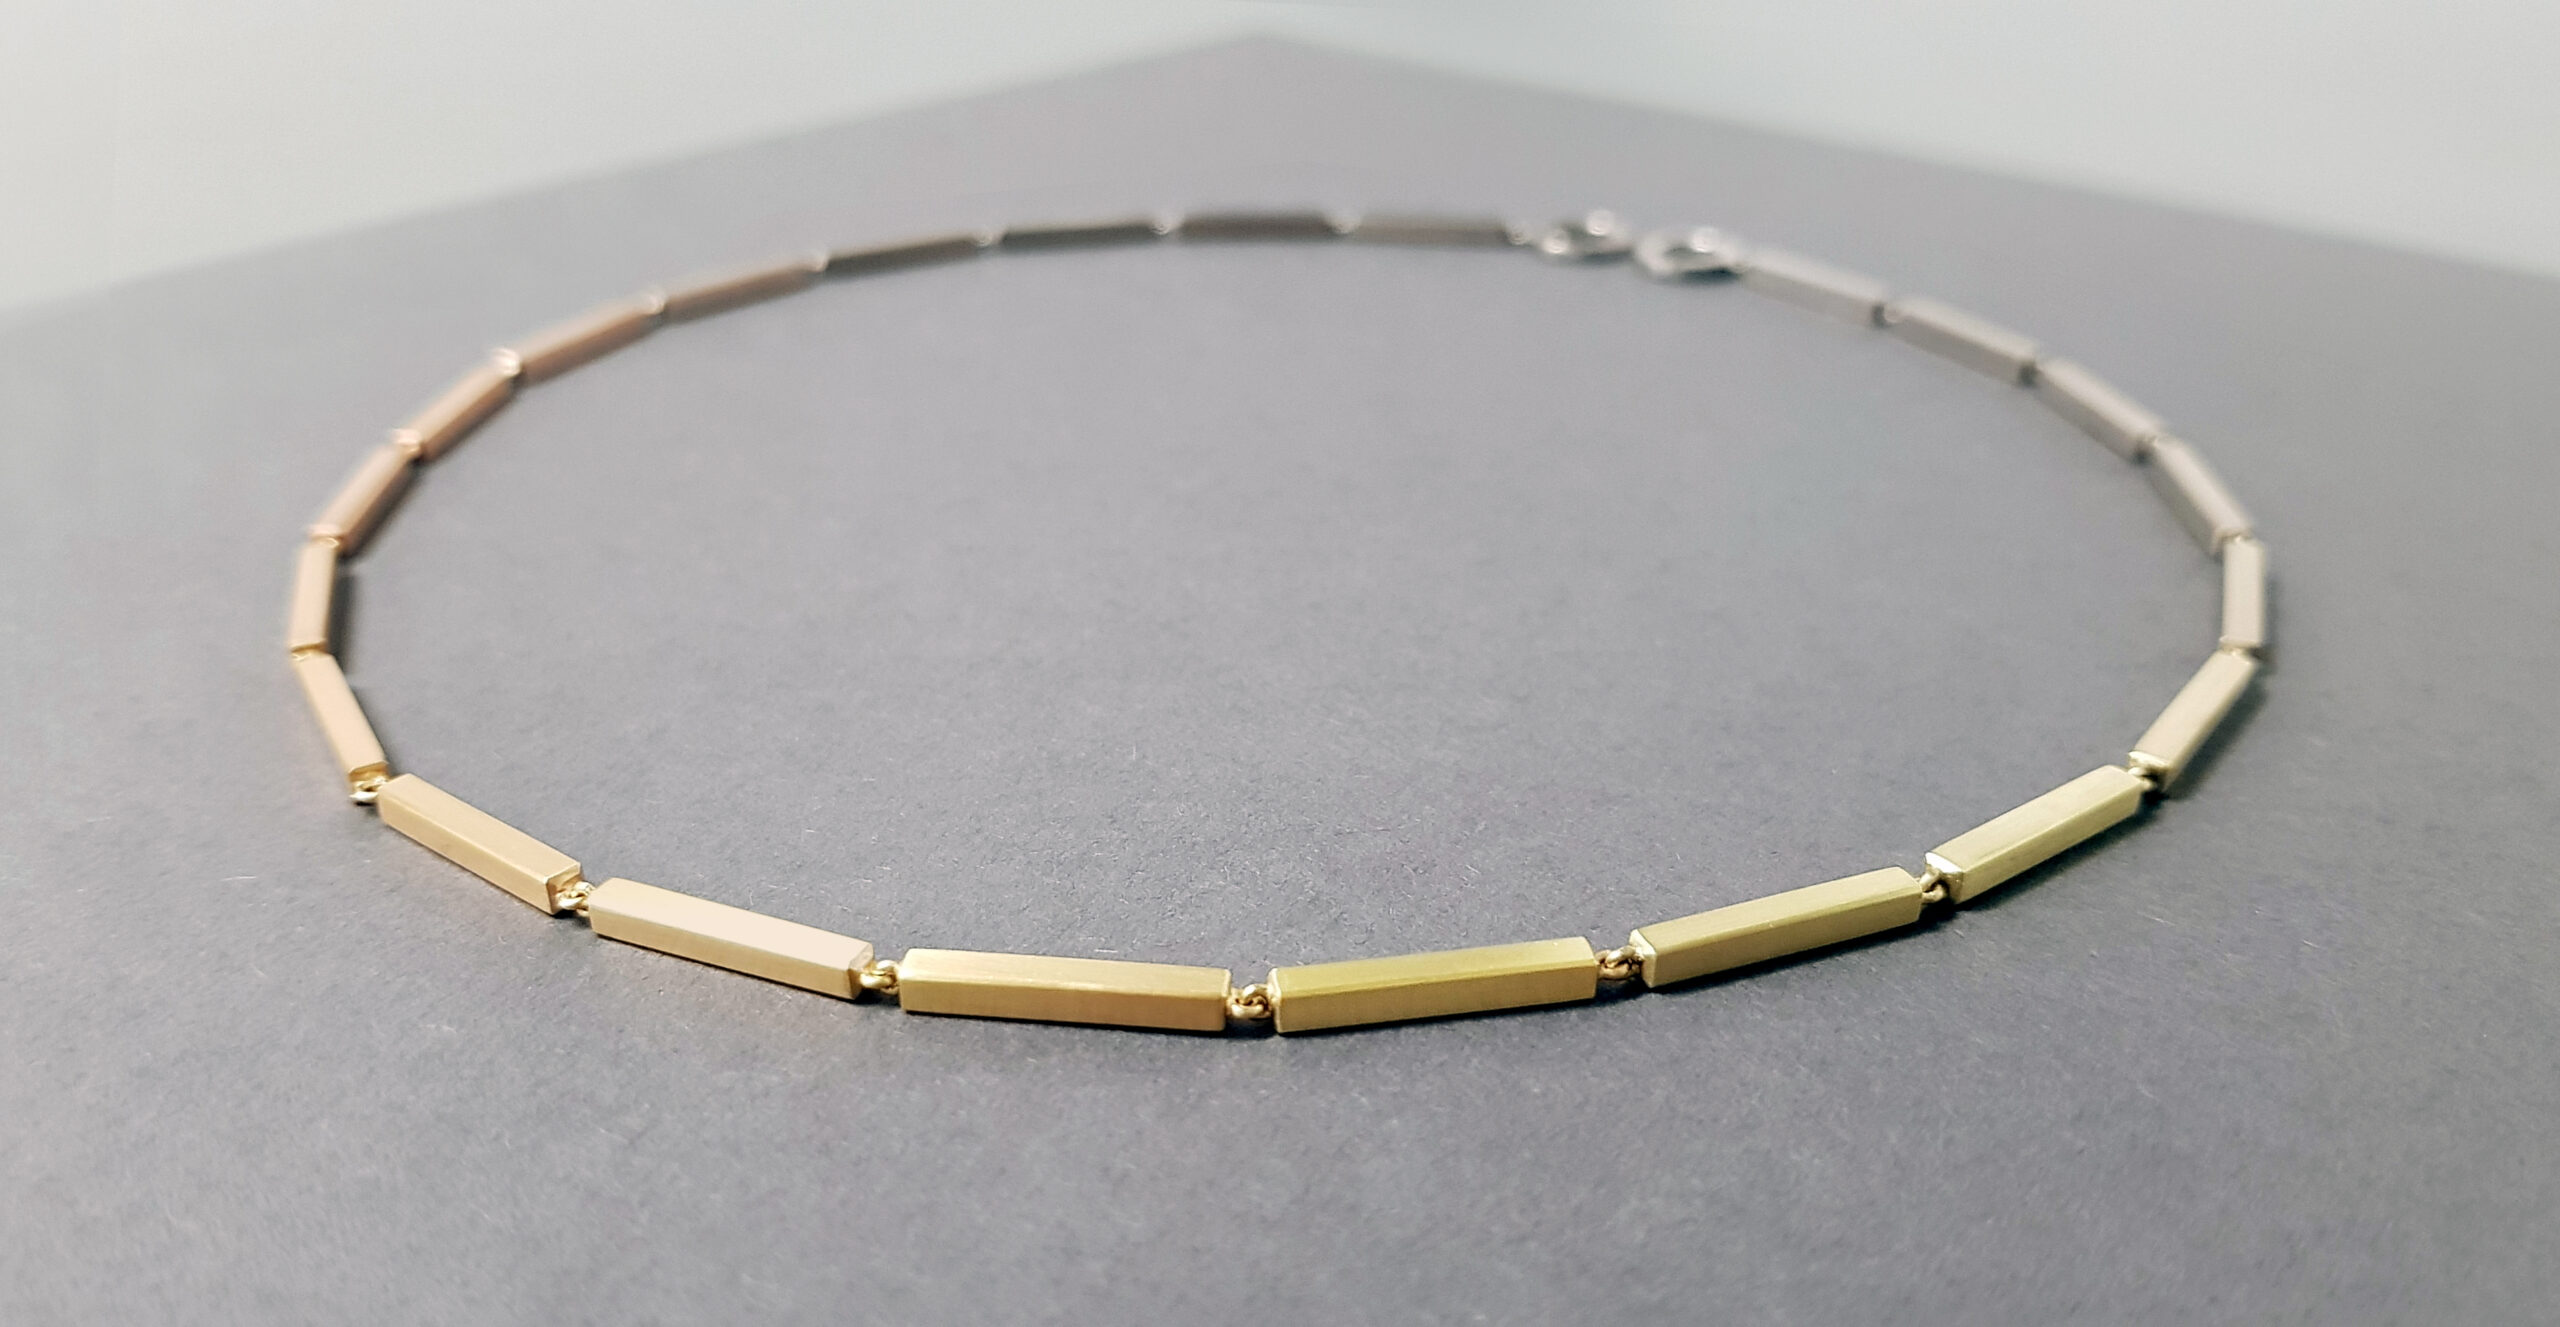 A gold necklace made of interlinking gold bars creating a gradient of colour, laid on a grey background